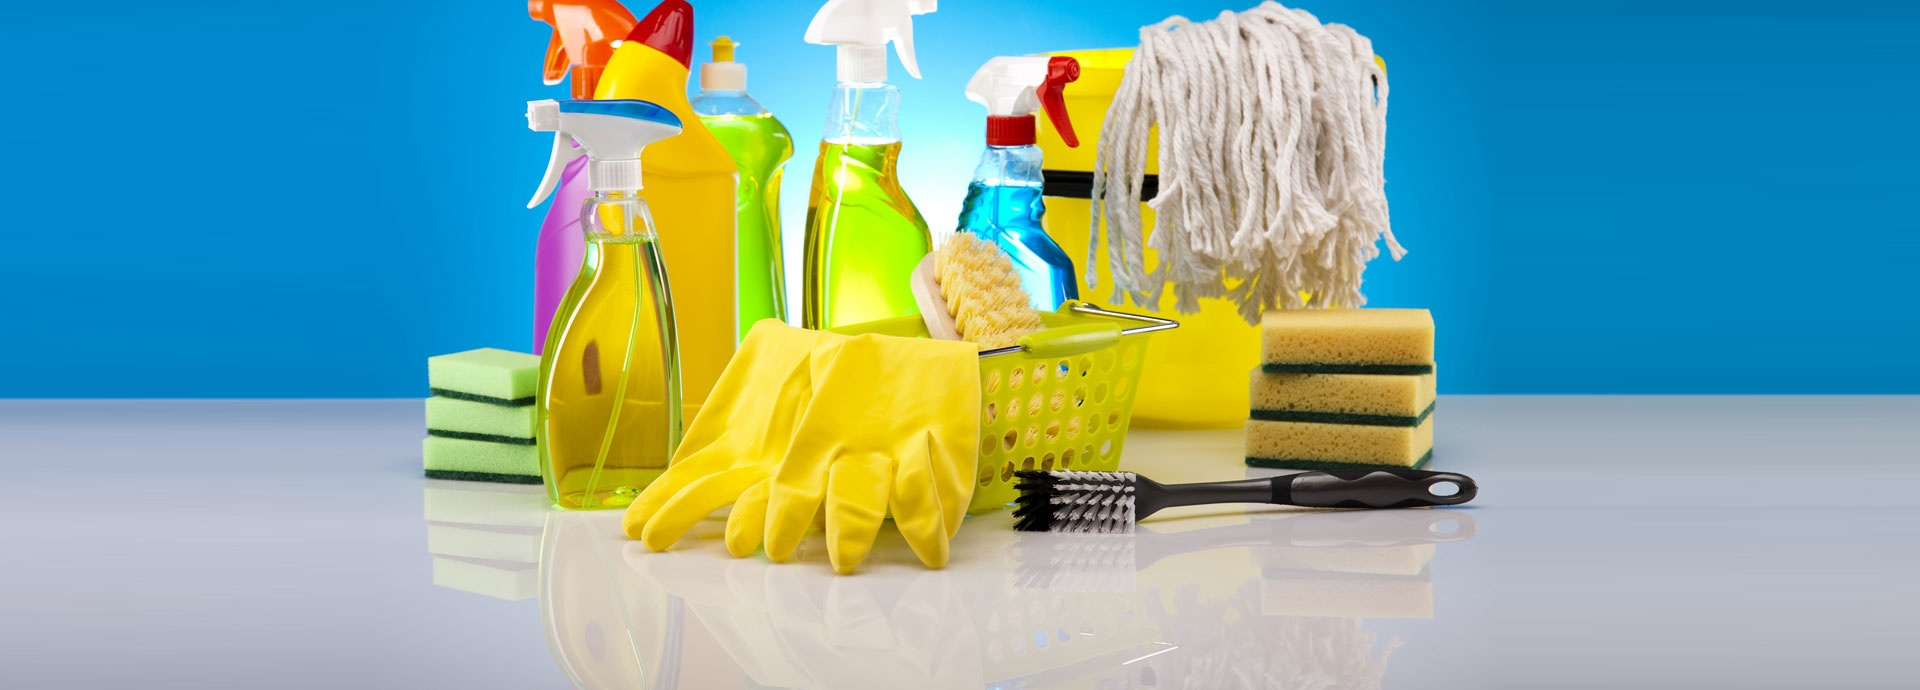 Northwest DFW Cleaning Company